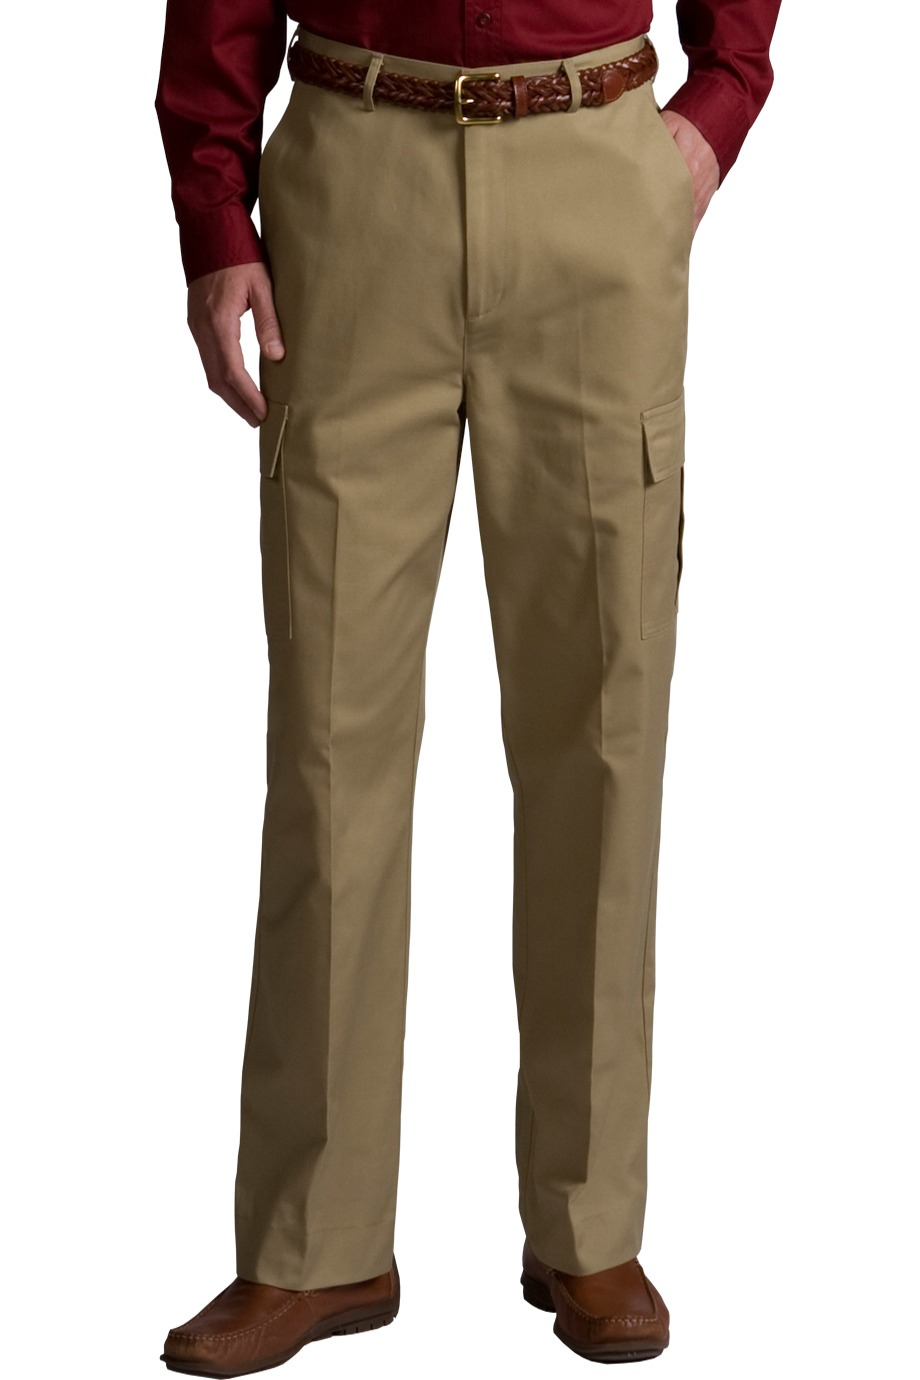 Edwards Garment 2568 - Men's Utility Cargo Pant